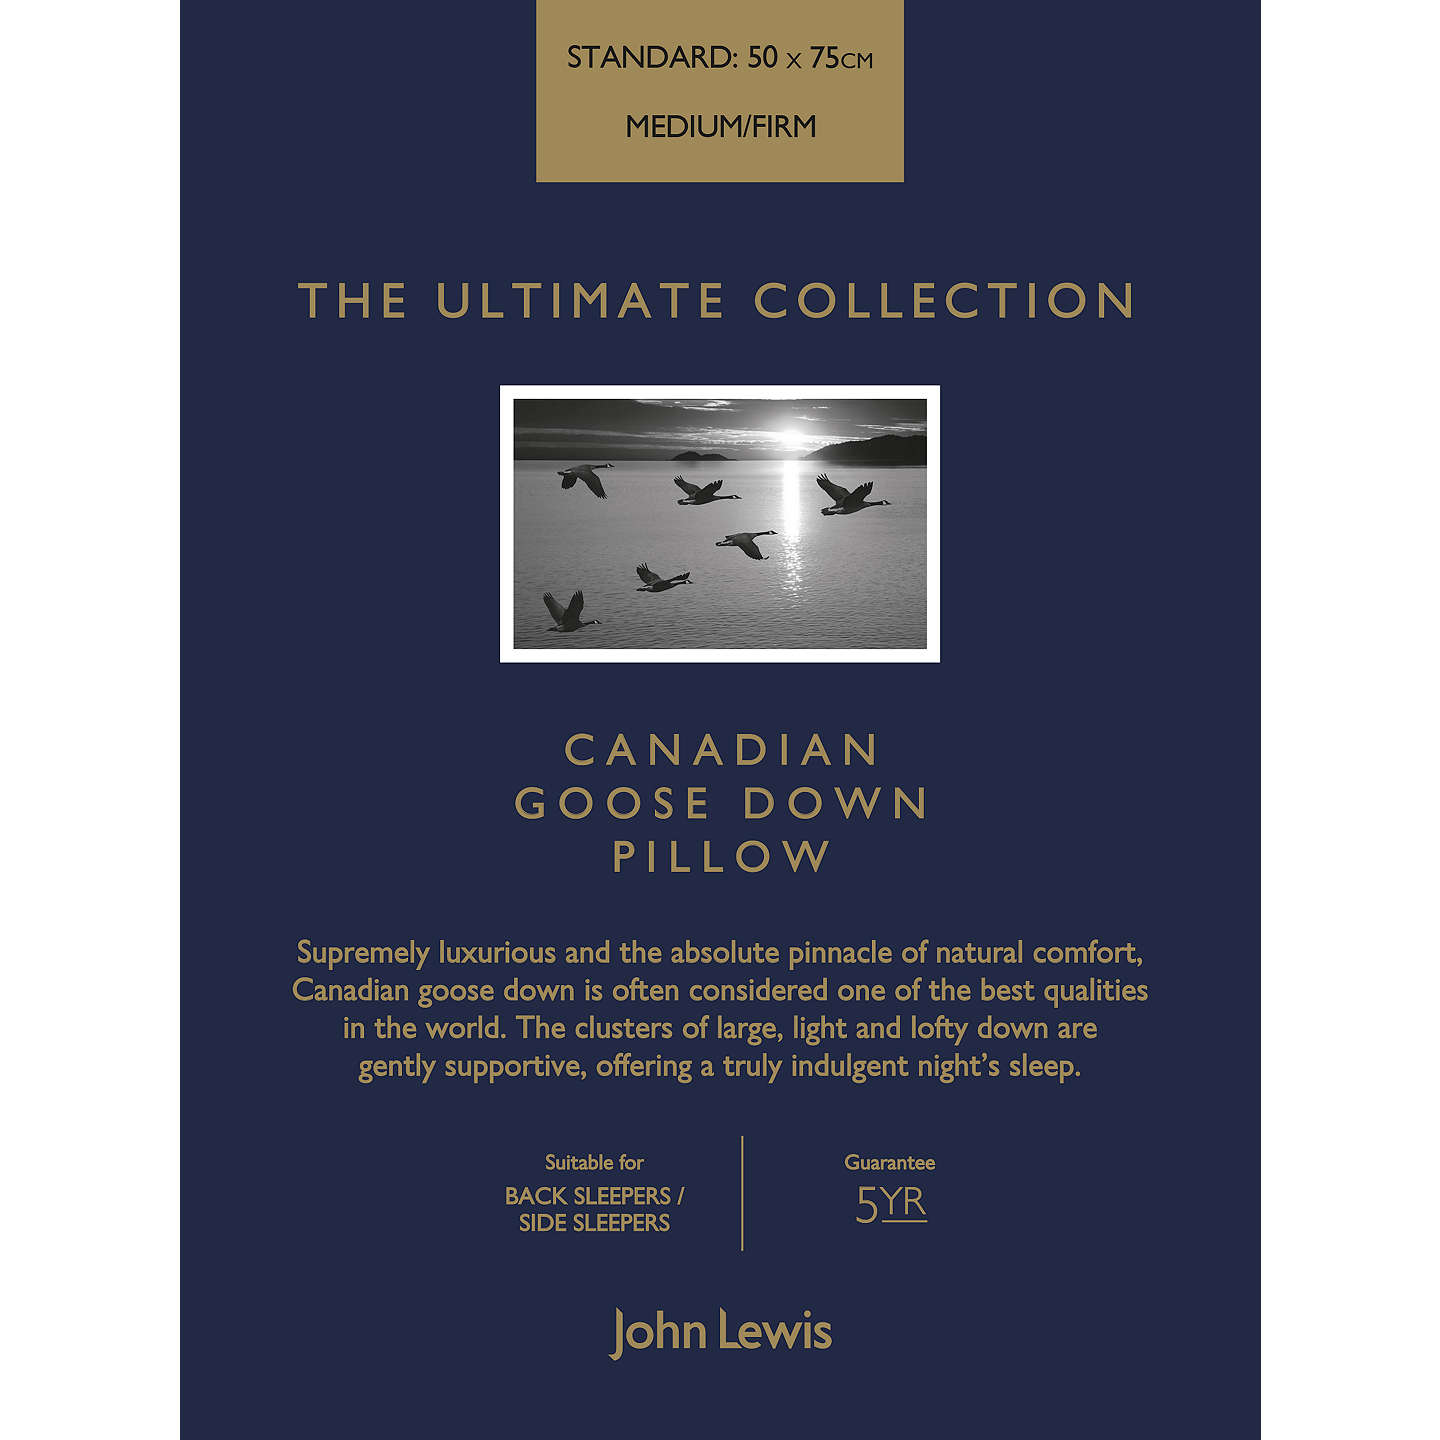 BuyJohn Lewis The Ultimate Collection Canadian Goose Down Standard Pillow, Medium/Firm Online at johnlewis.com